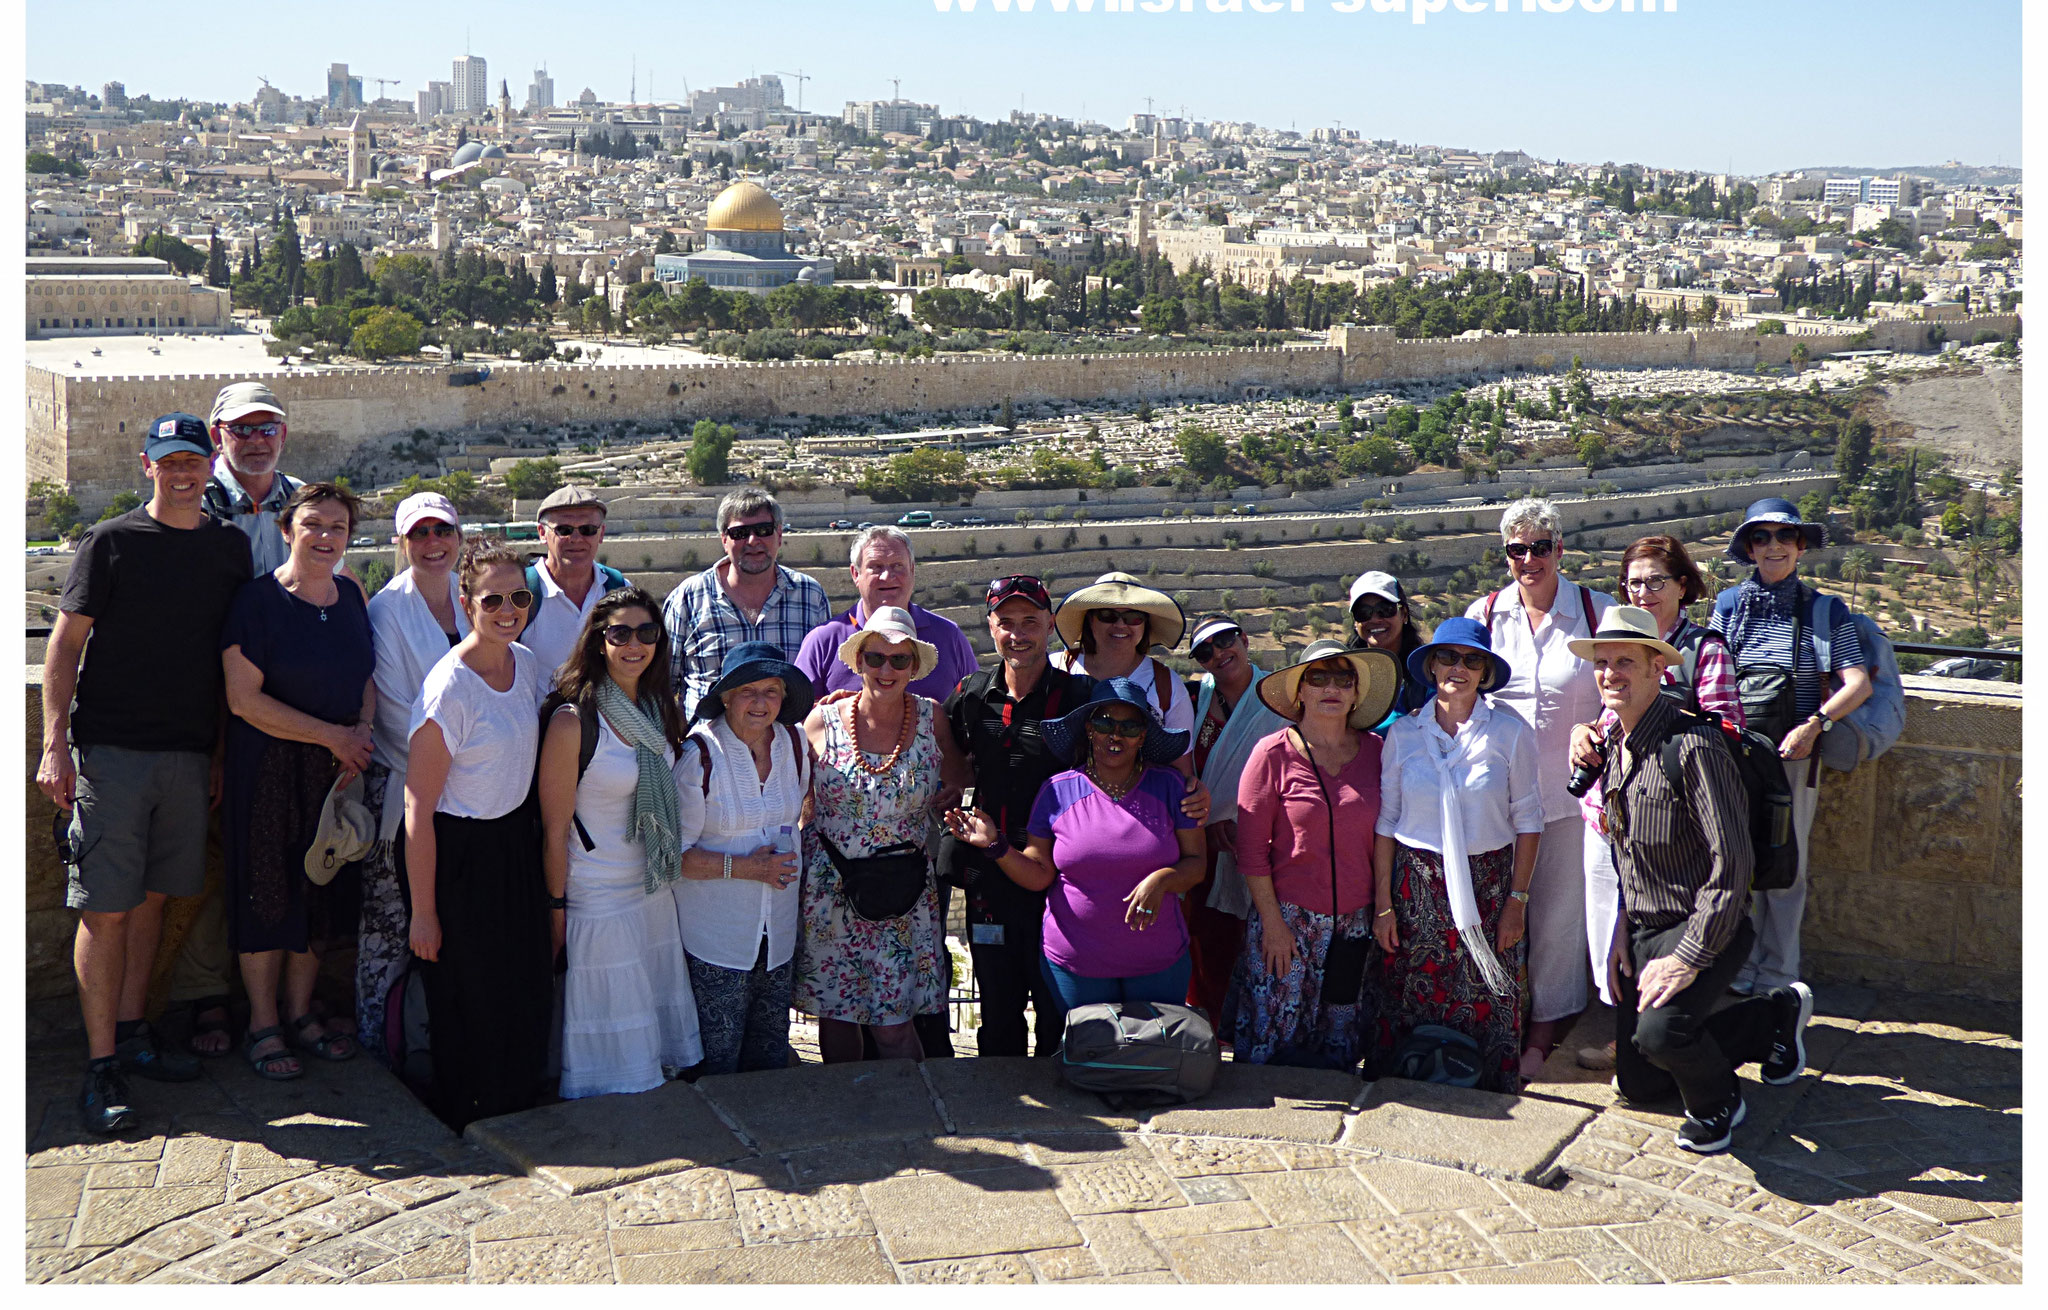 With the South African group on top of Mount of Olives, 2014